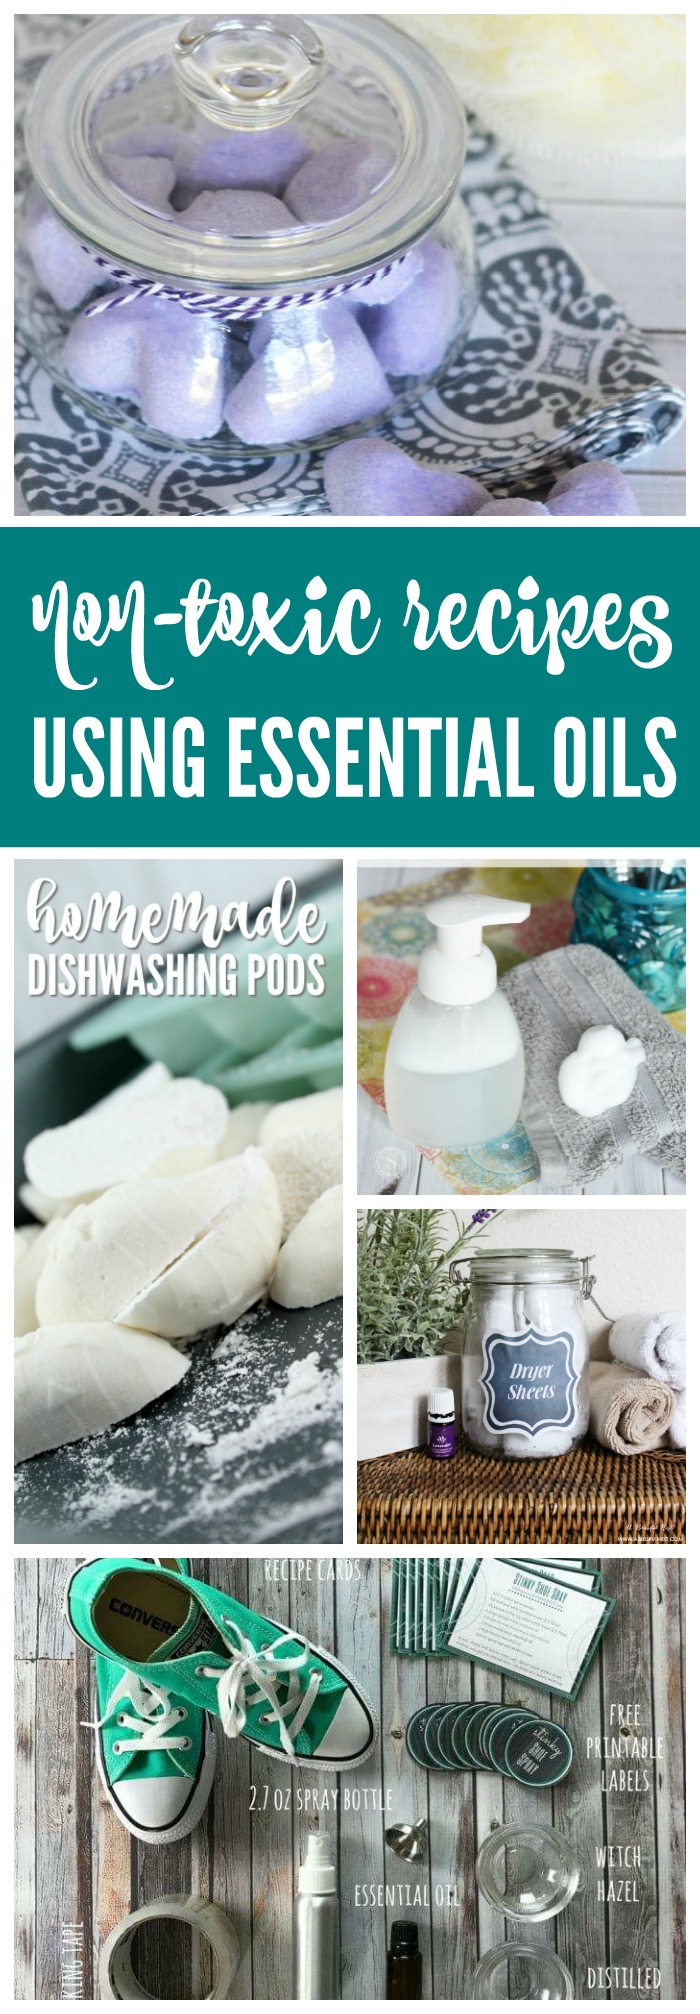 Here are The Best Non-Toxic Home Recipes Using Essential Oils! Chemical Free and Homemade HACKS you need to ditch the toxics this year for a healthy home!